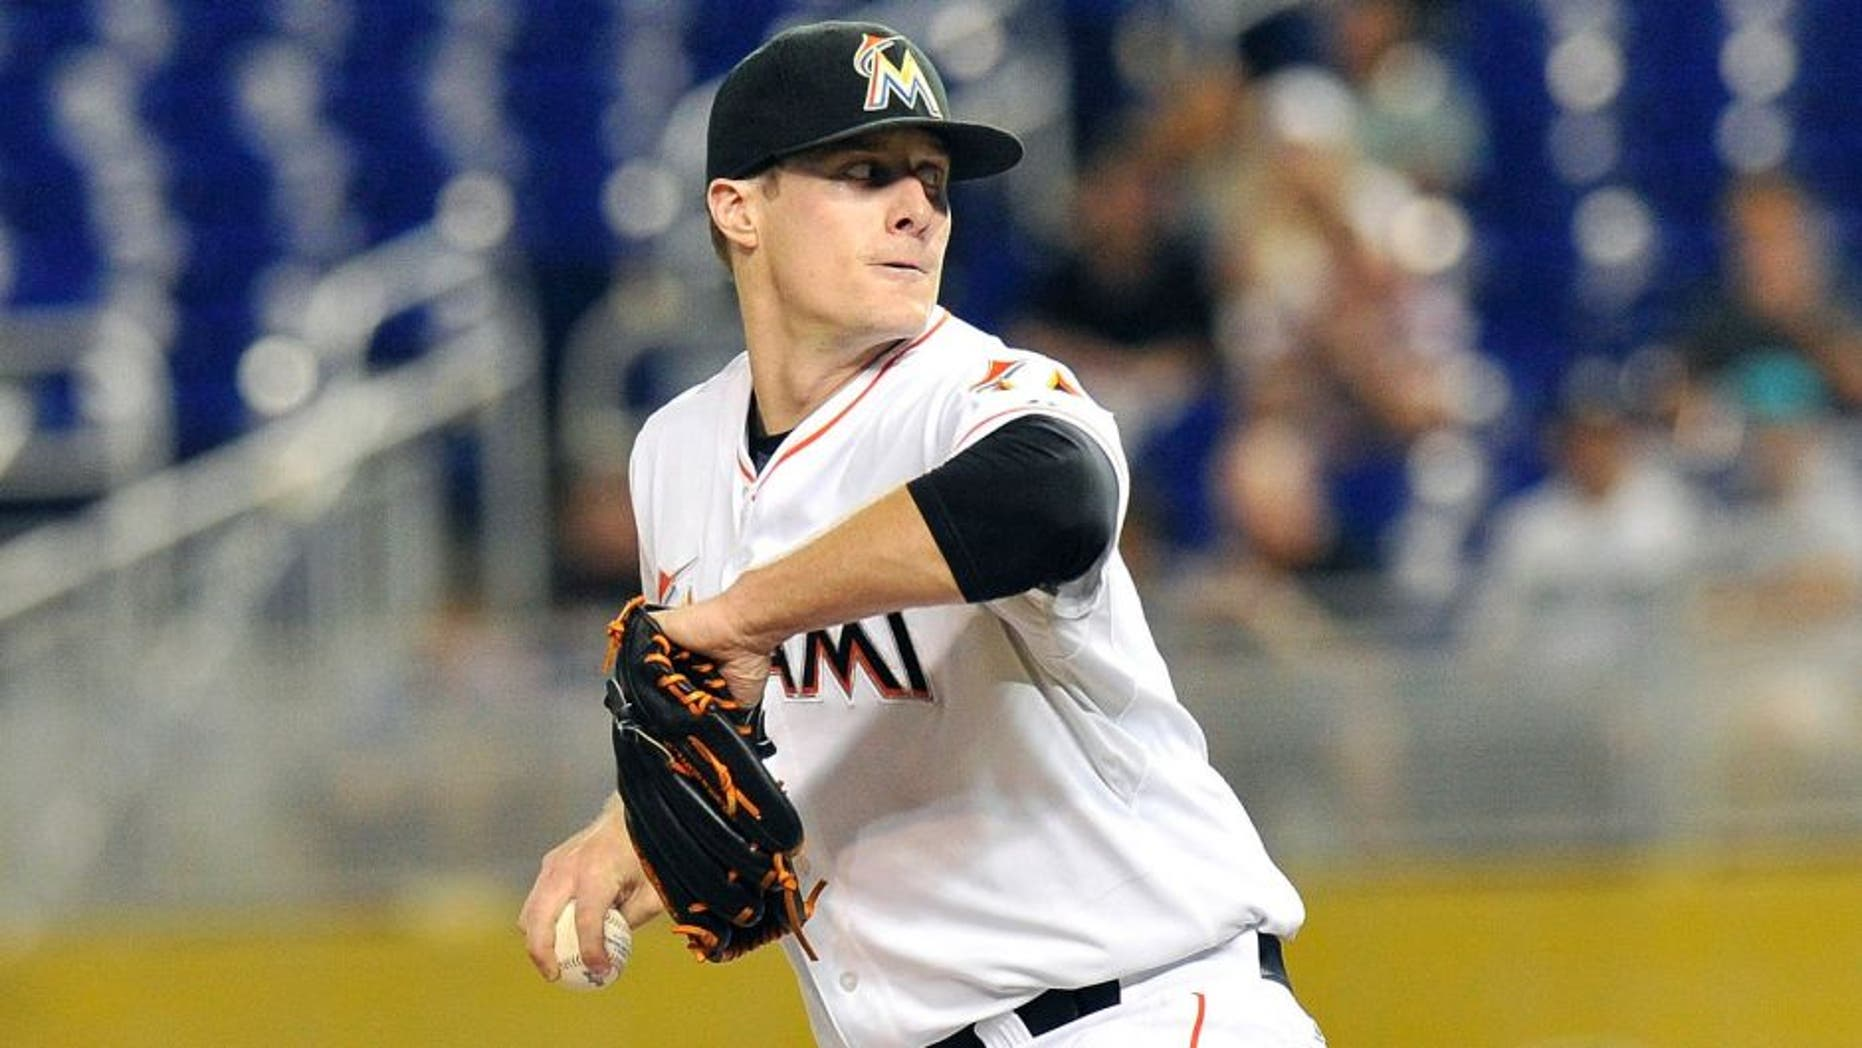 Aug 24, 2015; Miami, FL, USA; Miami Marlins starting pitcher Tom Koehler (34) delivers a pitch against the Pittsburgh Pirates during the first inning at Marlins Park. Mandatory Credit: Steve Mitchell-USA TODAY Sports